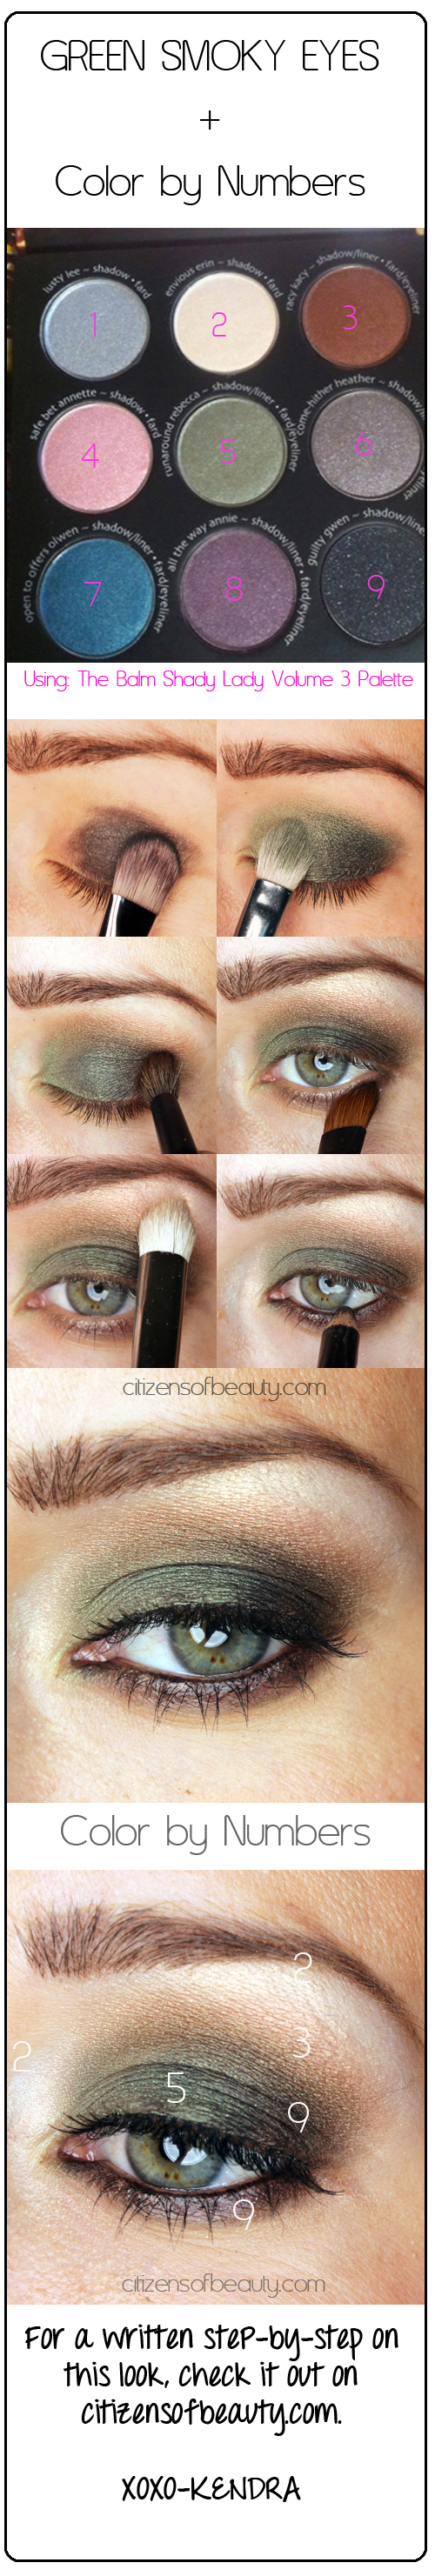 smoky-green-eyes-makeup